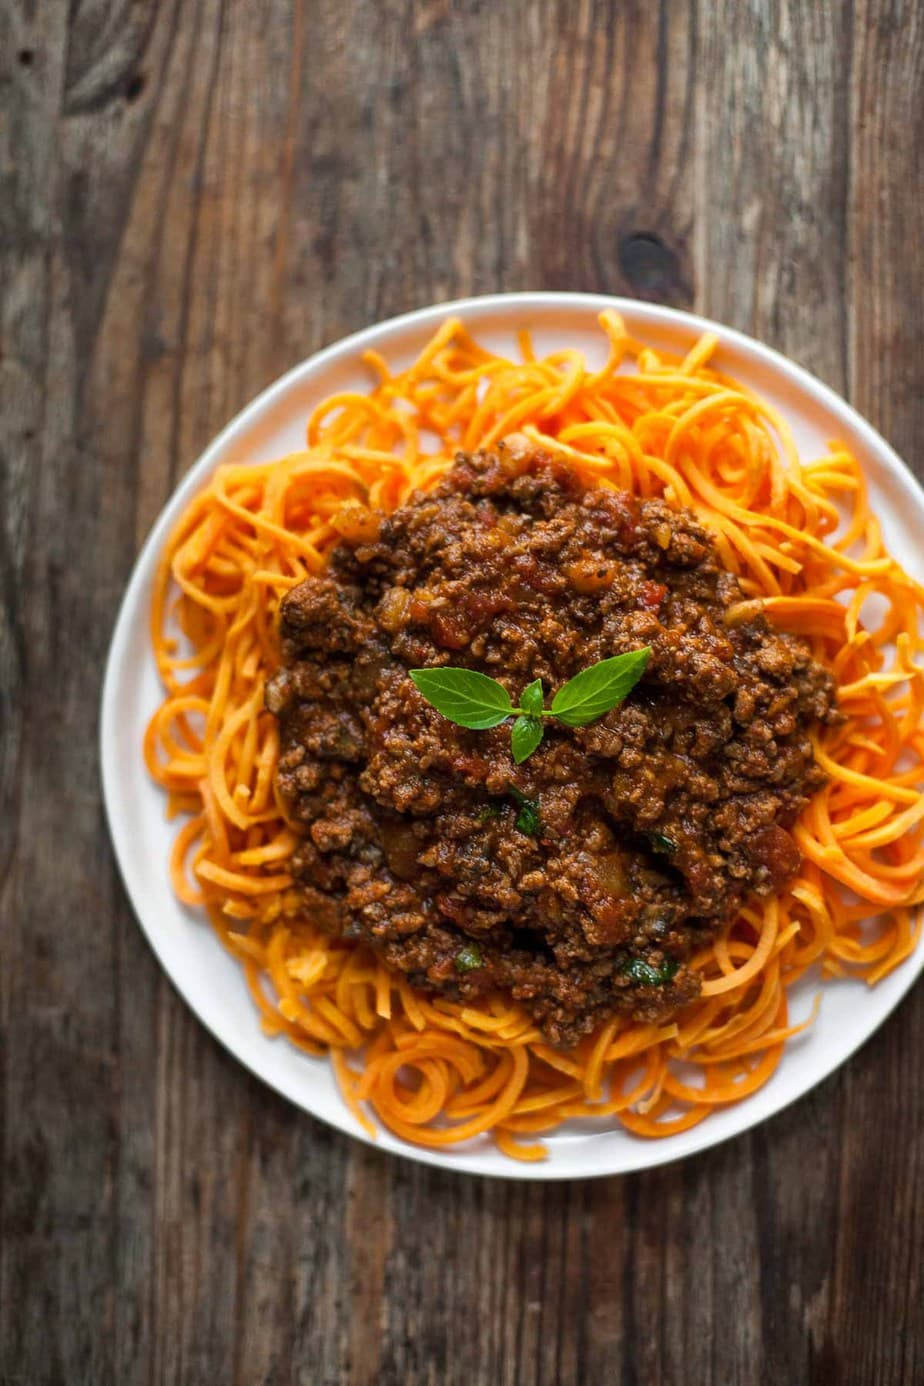 Whole30 Slow Cooked Bolognese Sauce with Sweet Potato Noodles by A Calculated Whisk